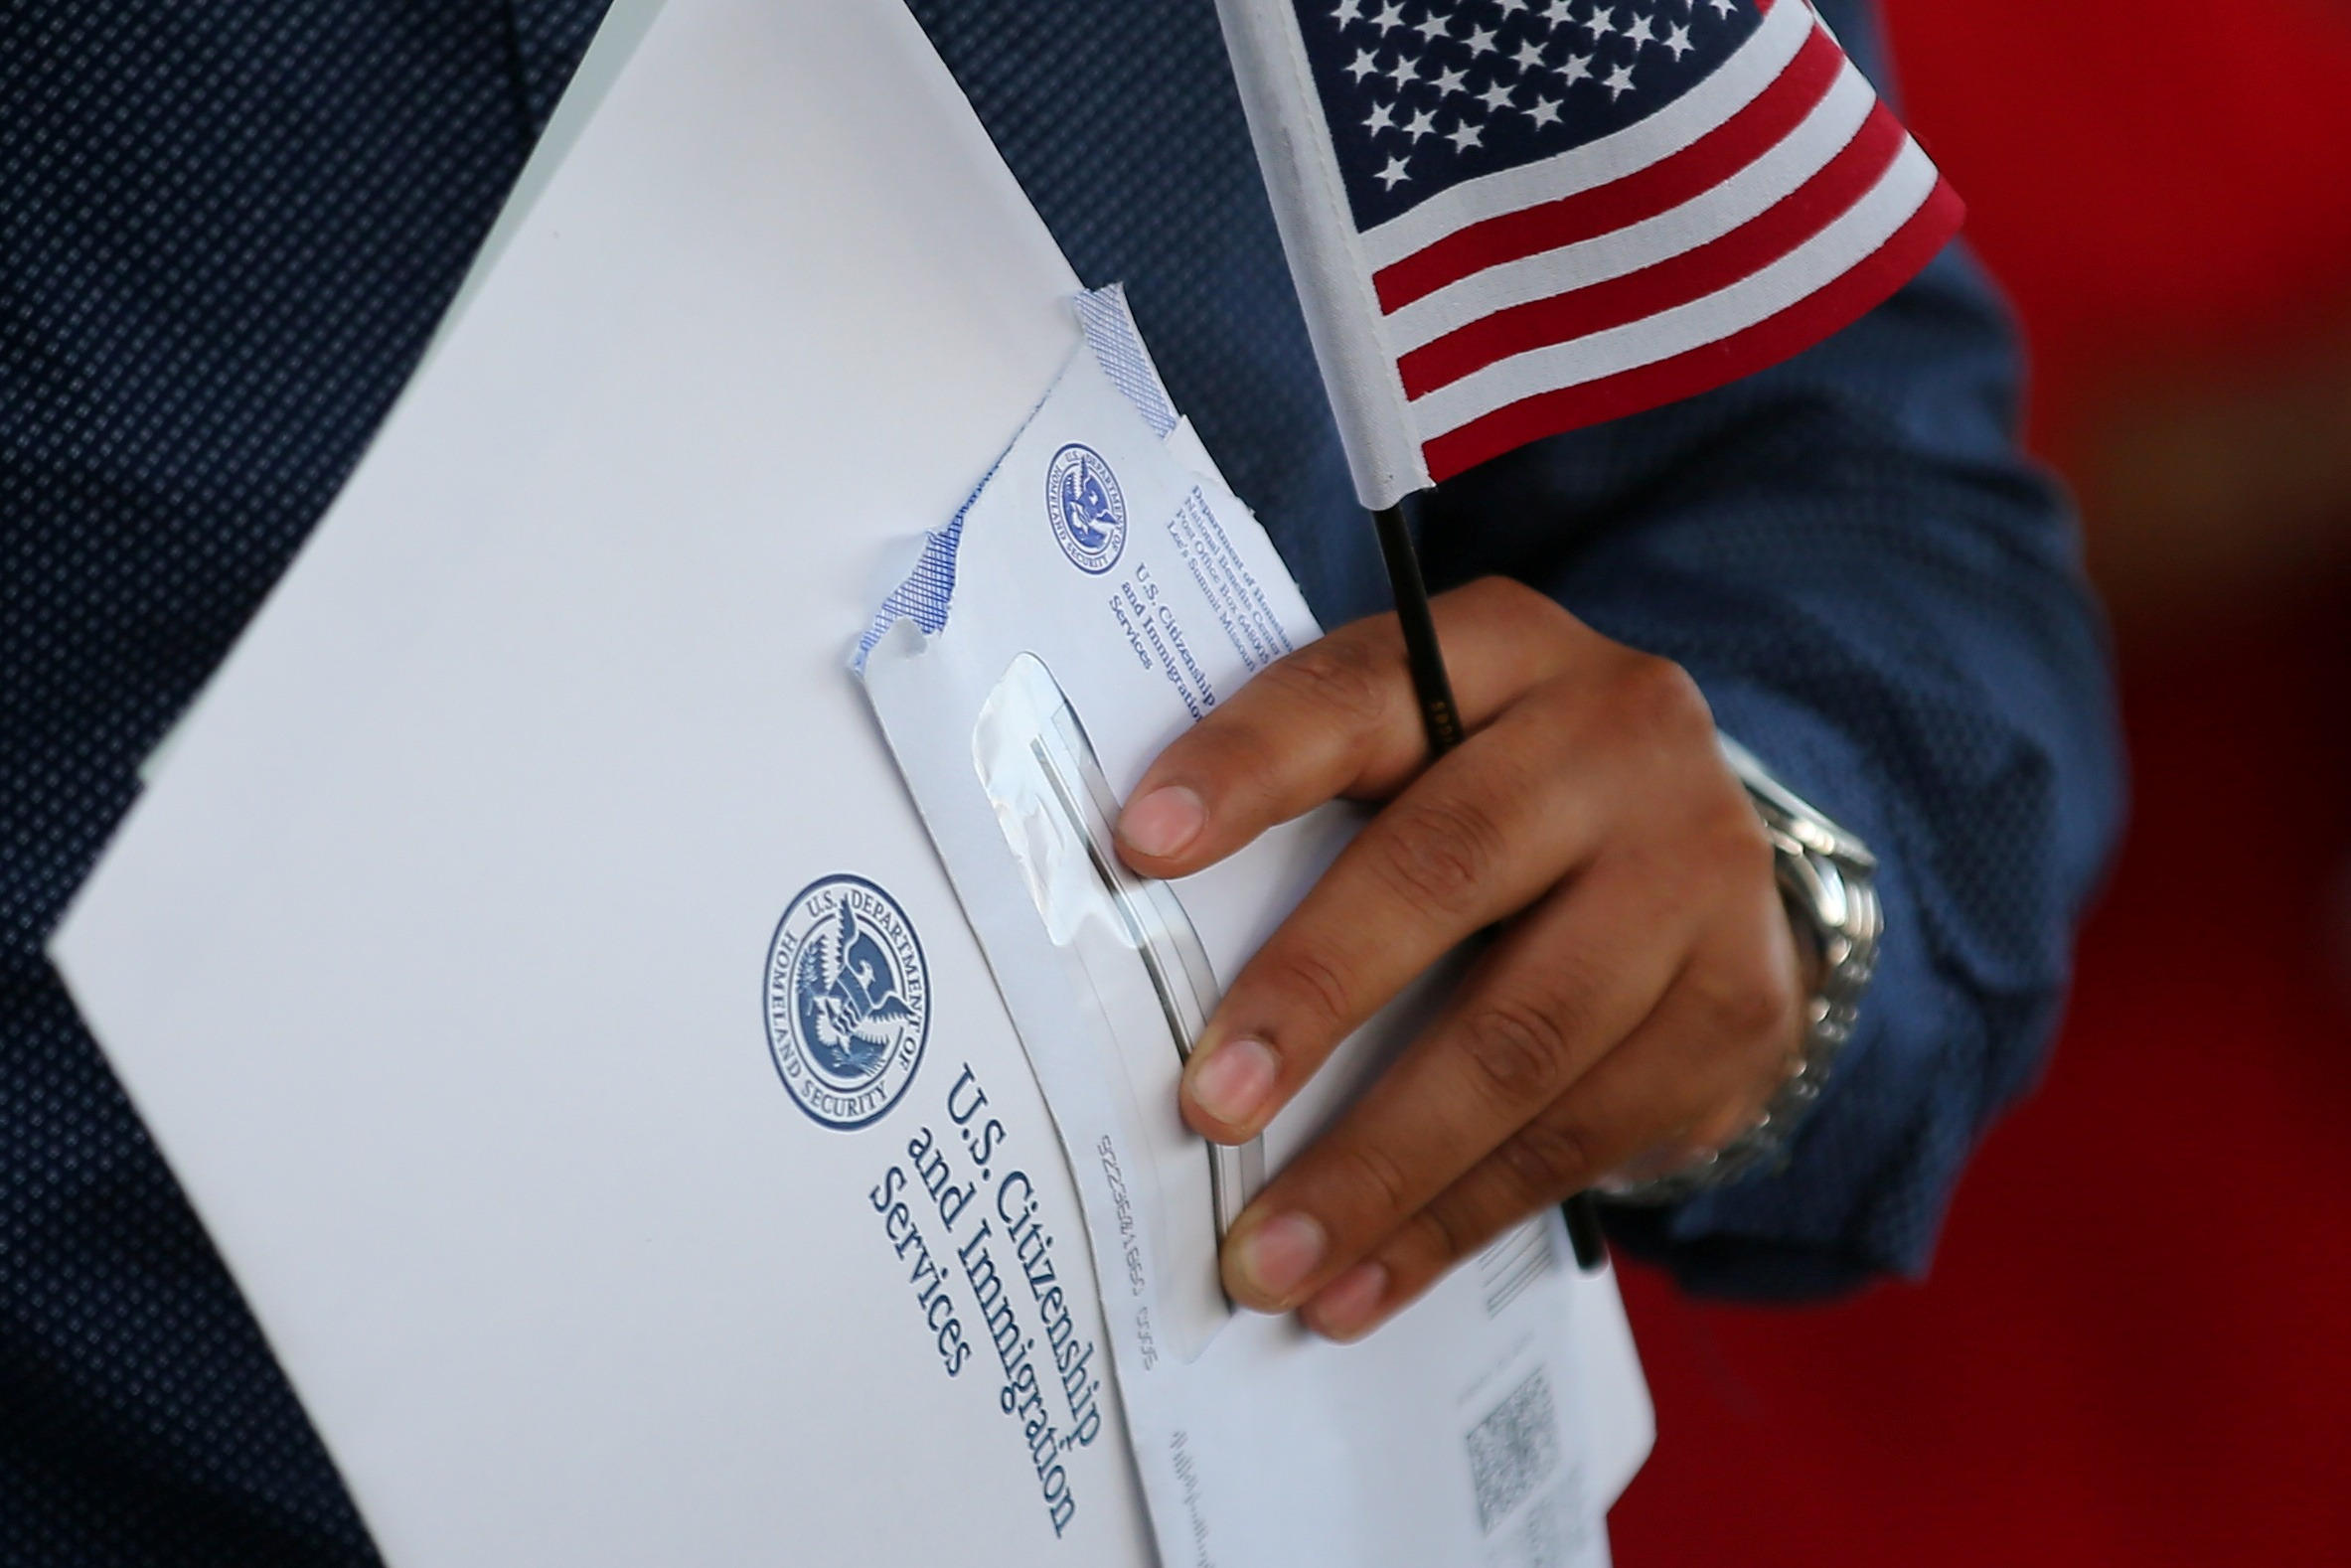 Close-up photo of man's hand, holding US flag, papers and envelope with U.S. Citizenship and Immigration Services logo